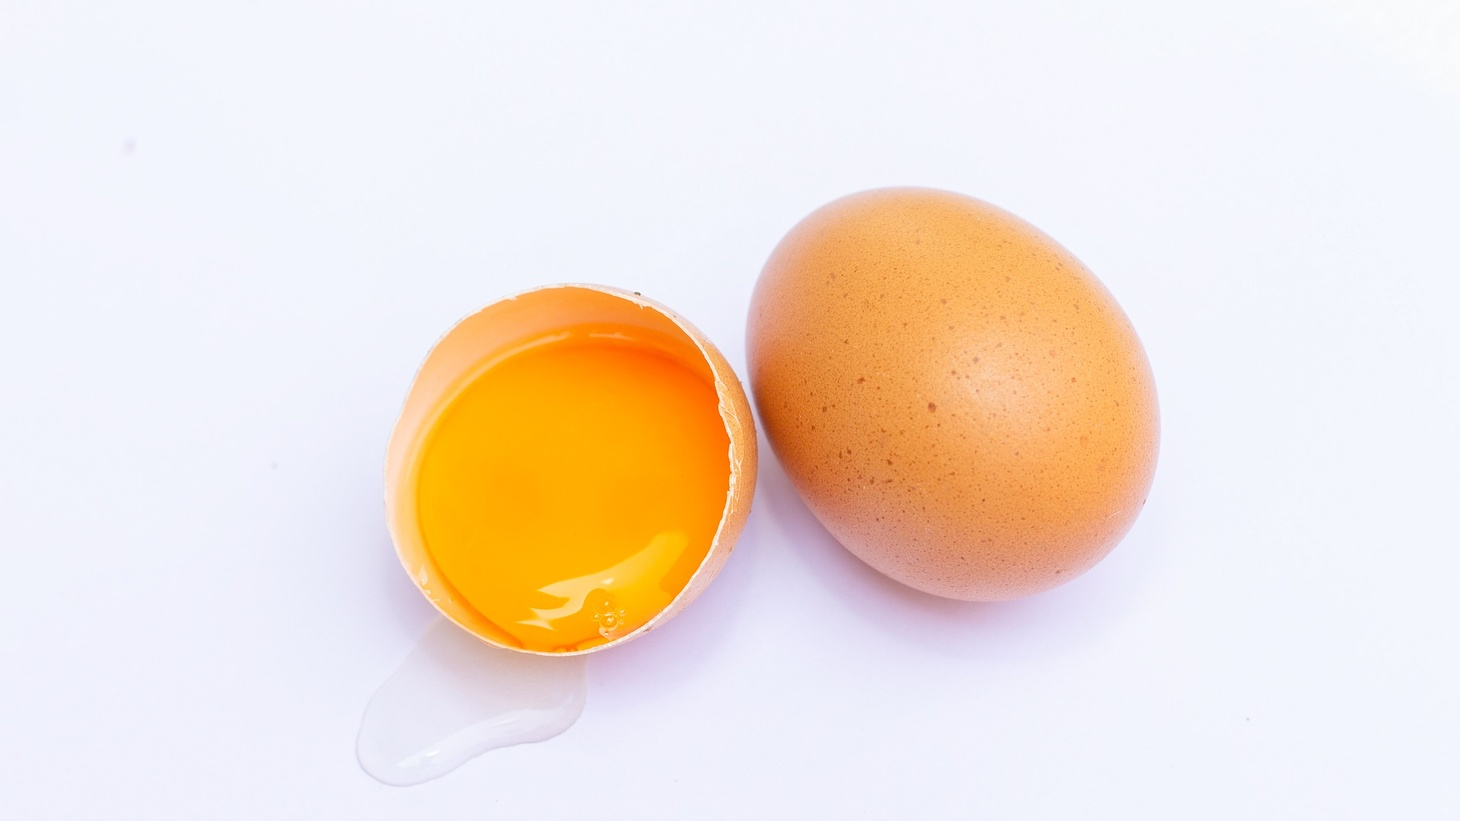 Food writer Rachel Khong discovered that the preferred color of egg yolks varies around the world, from pale yellow to deep orange.